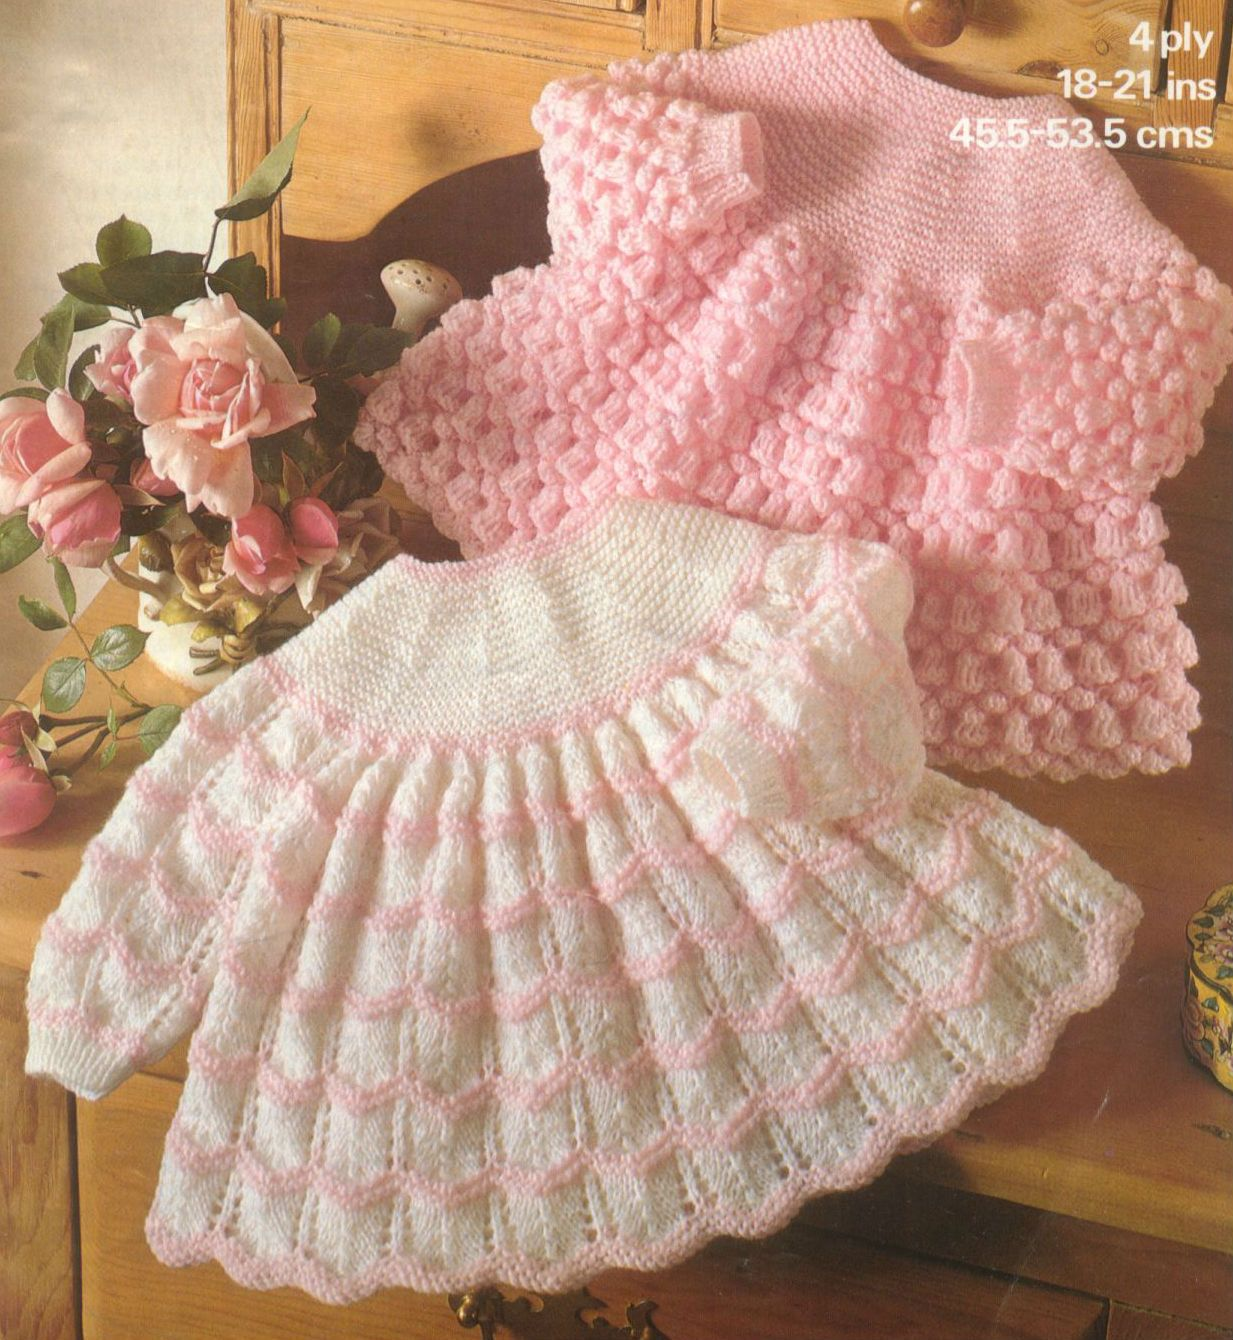 Knitting Pattern For Newborn Jumper : Knit Baby Dress Vintage Knitting Pattern 18-21 inch chest Sweater Angel Top l...